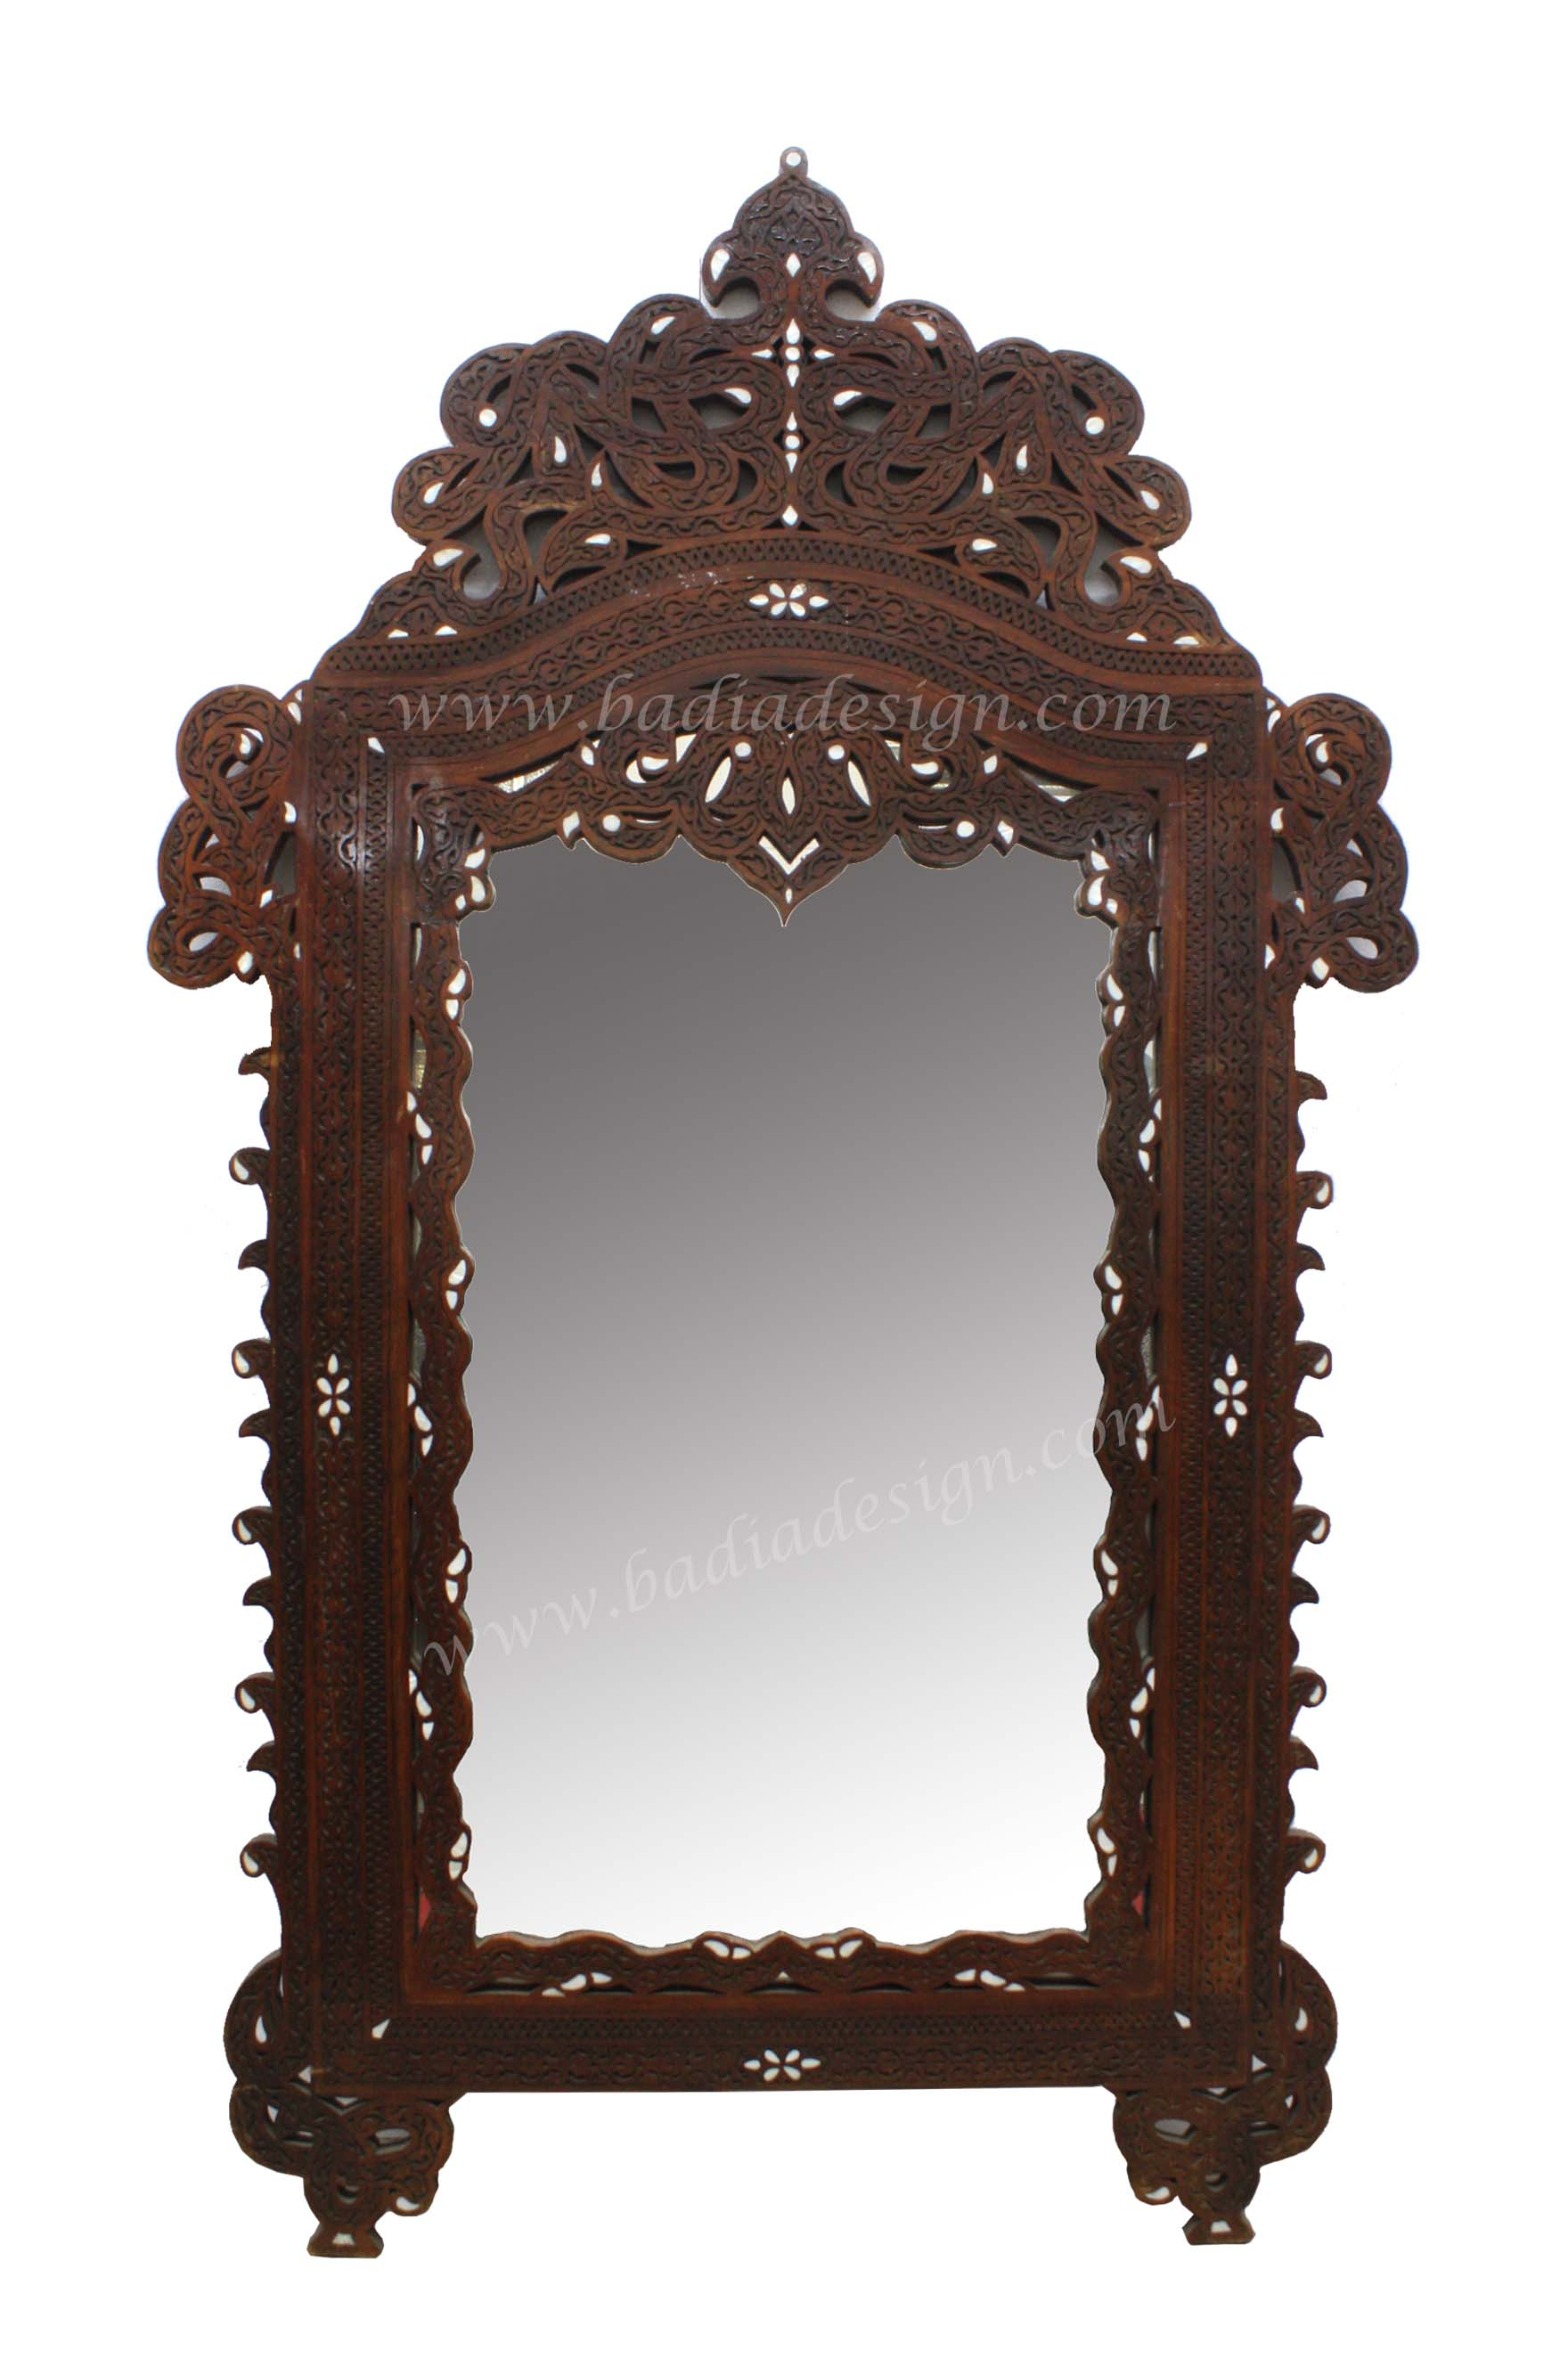 tall-moroccan-bone-inlay-mirror-m-mop029.jpg